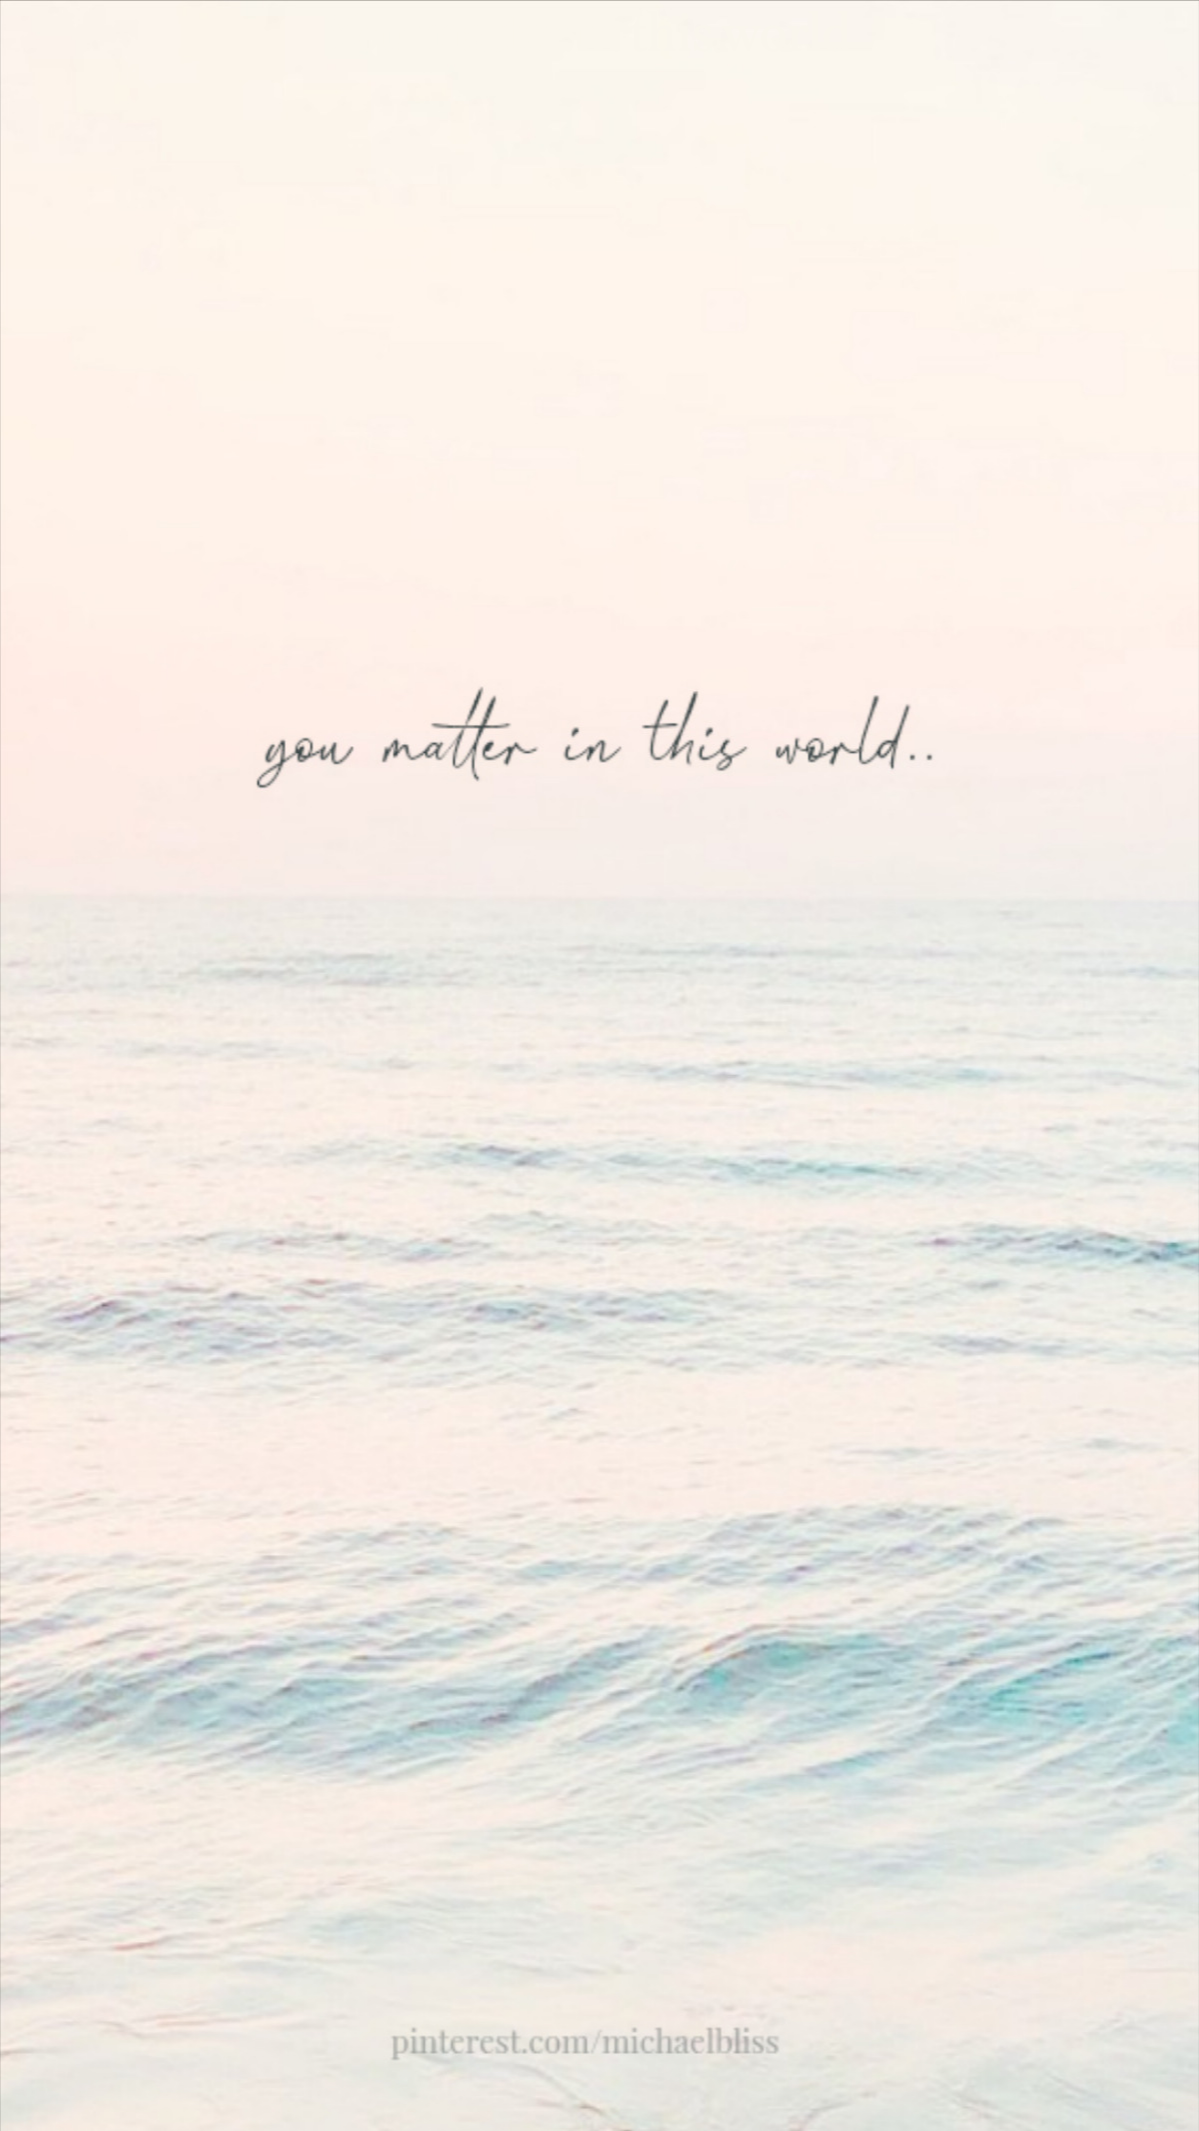 You matter in this world